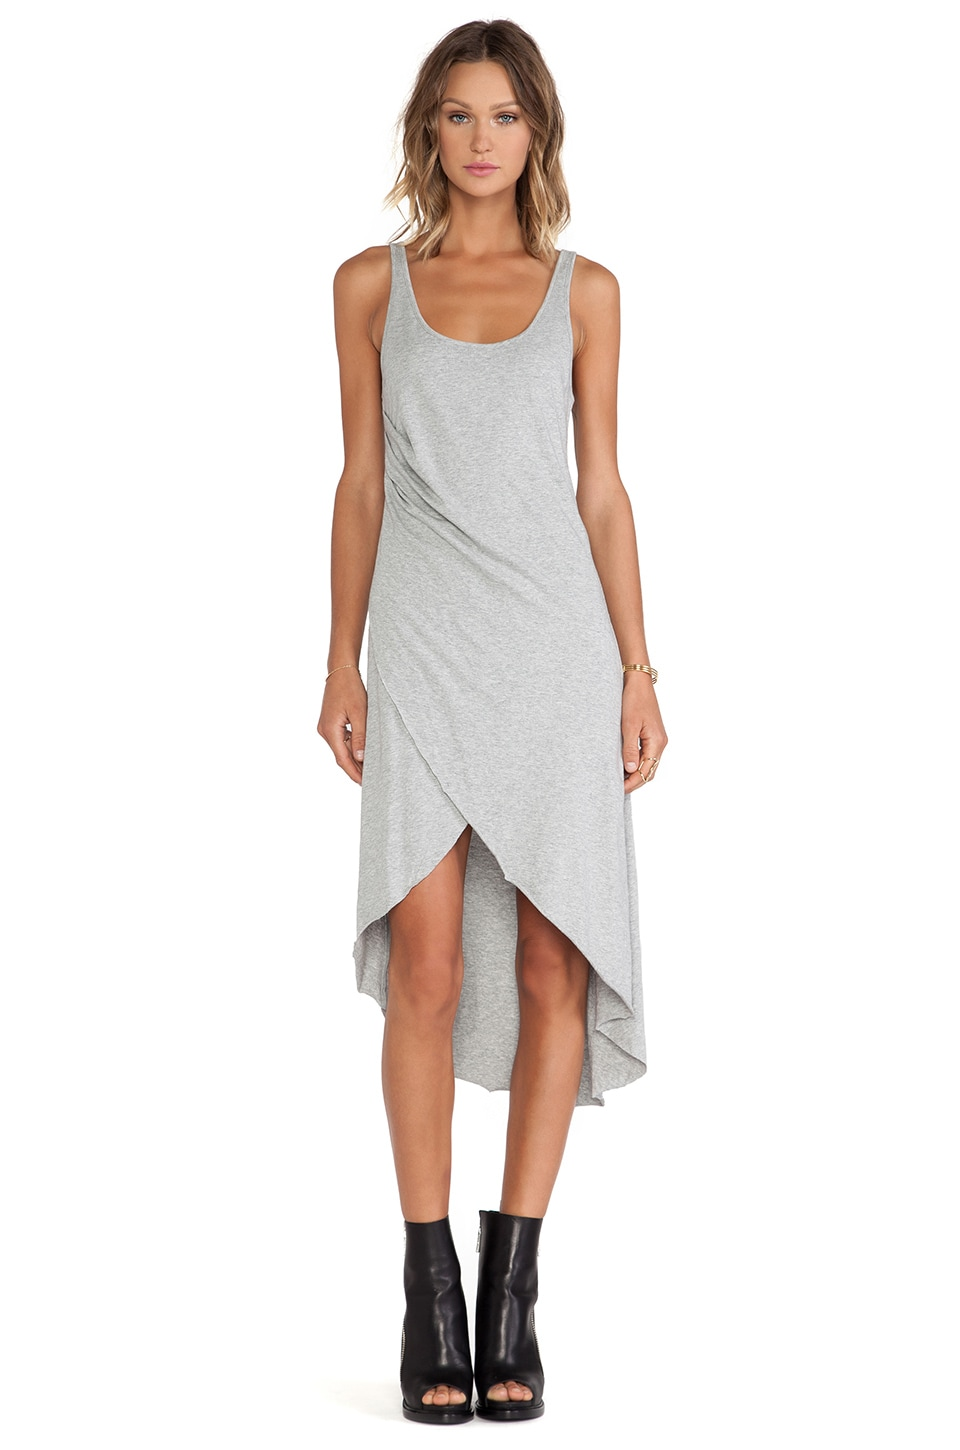 First Base Babin' Cross Over Dress in Grey Marle